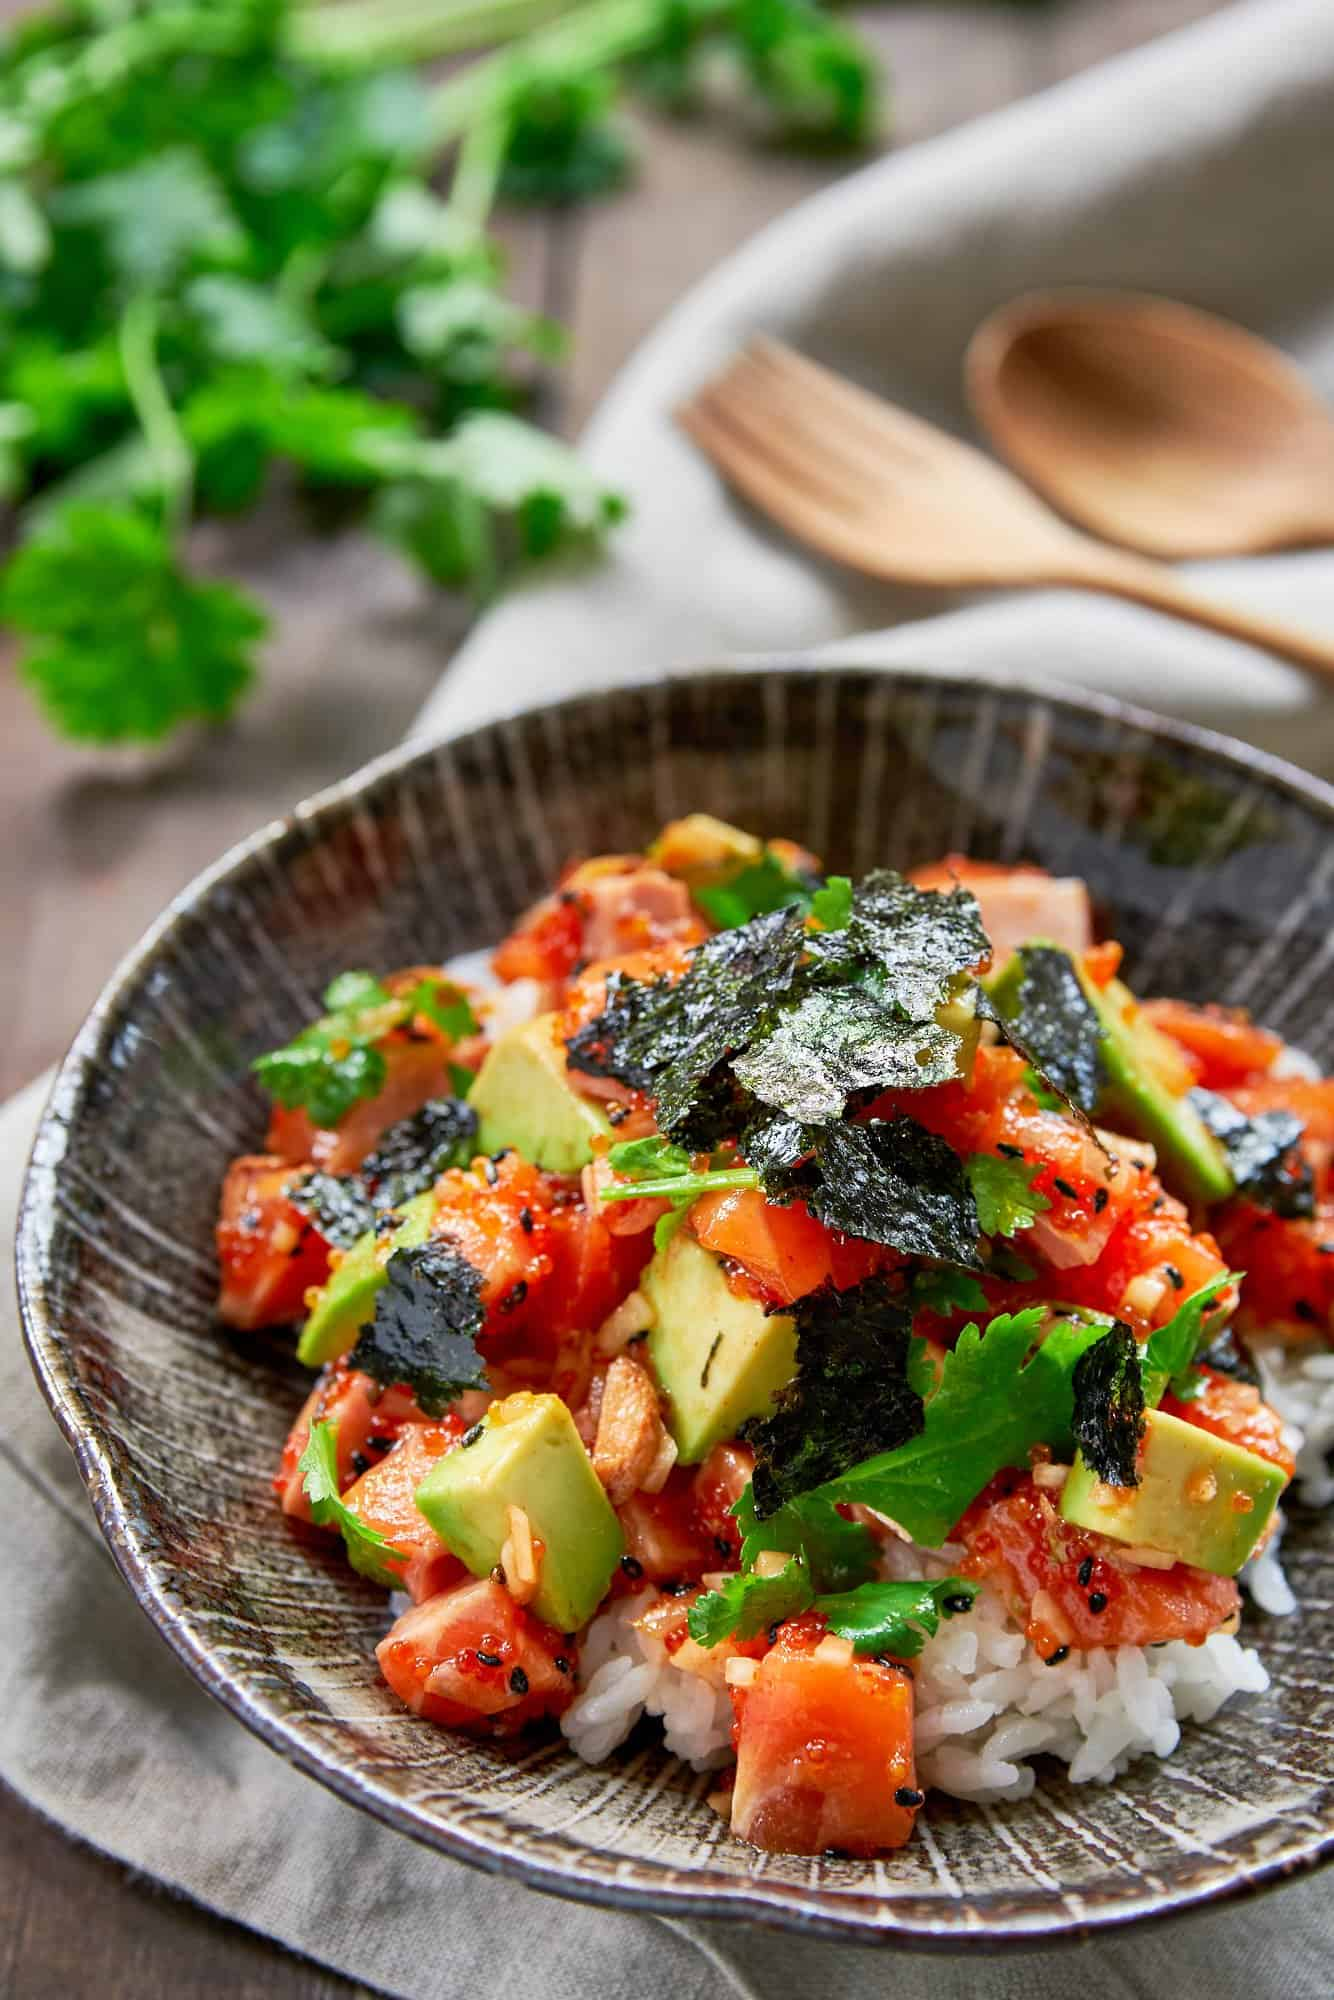 The best Spicy Salmon Poke recipe. With rich salmon, creamy avocado, crunchy tobiko, sweet onions and fresh cilantro seasoned with a sriracha sesame sauce and served over a bowl of hot rice.